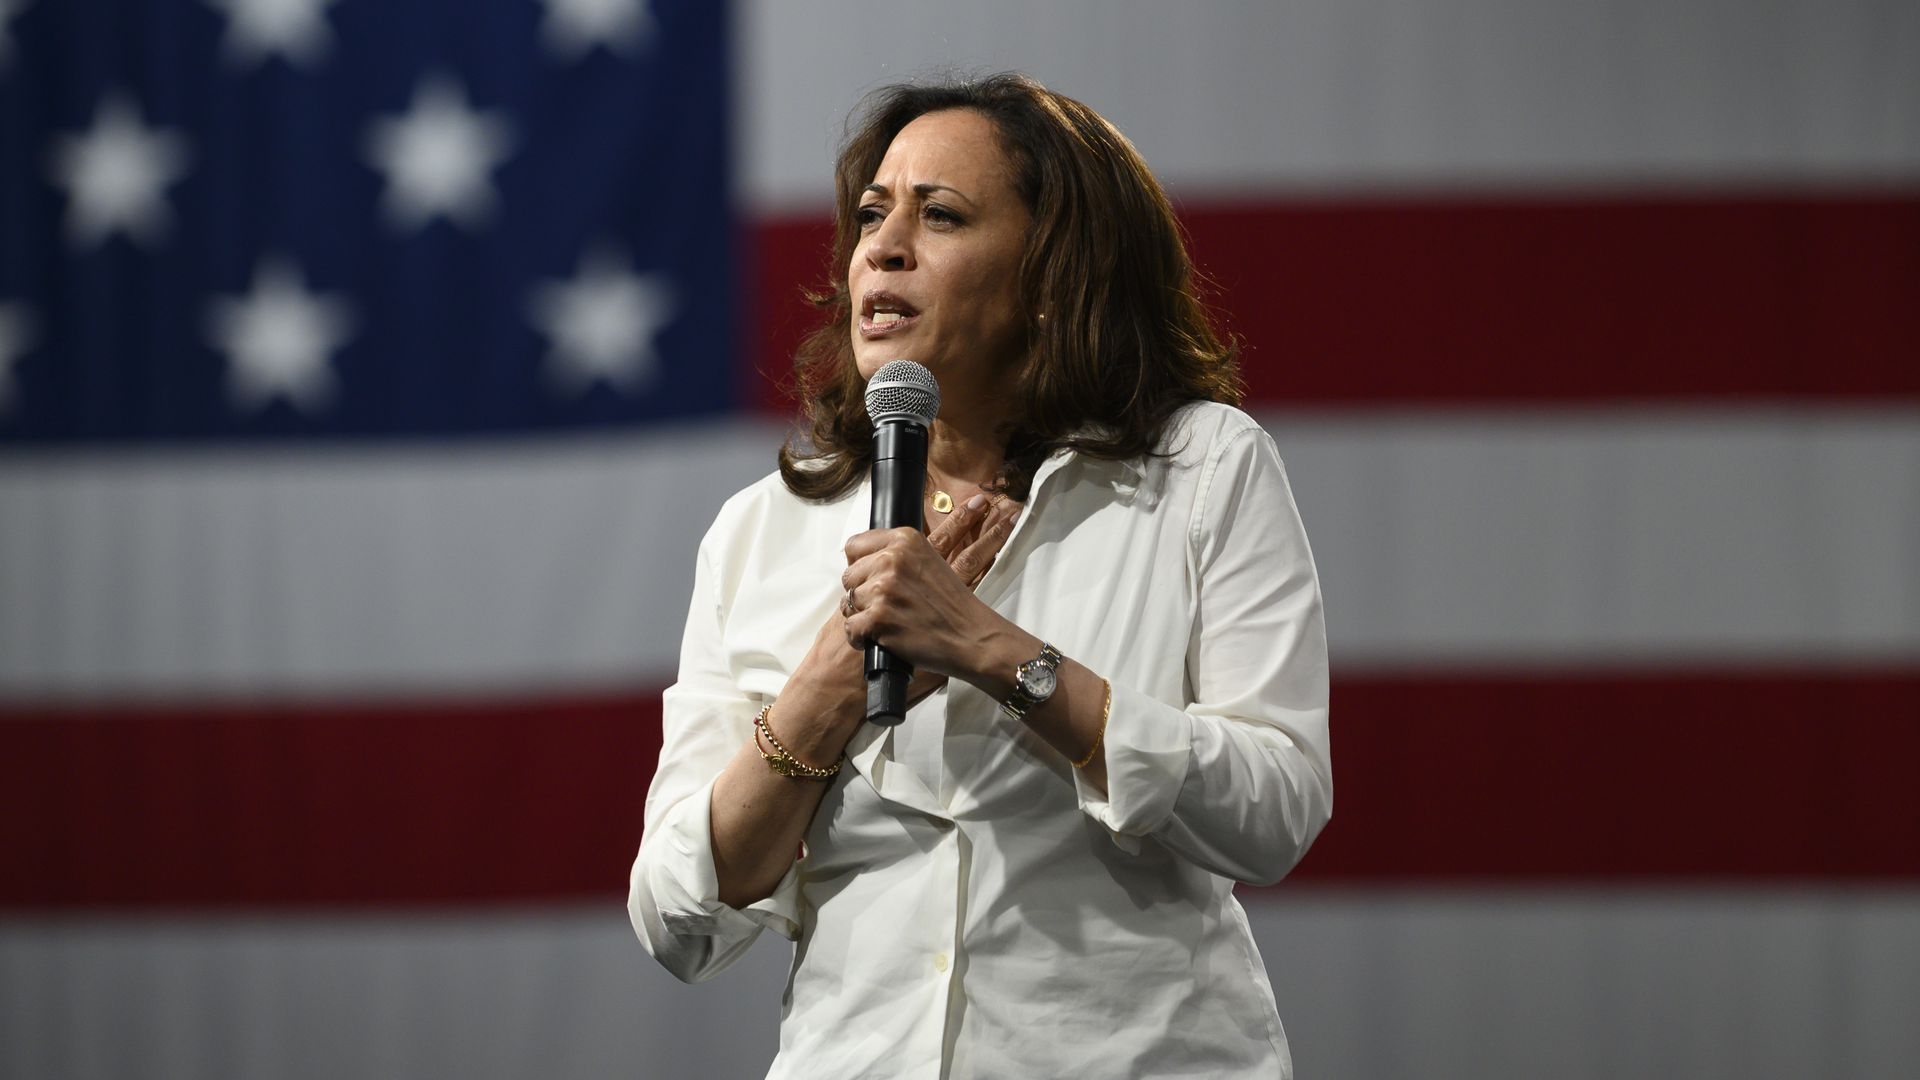 Democratic presidential candidate Sen. Kamala Harris (D-CA) speaks on stage during a forum on gun safety at the Iowa Events Center on August 10, 2019 in Des Moines, Iowa.